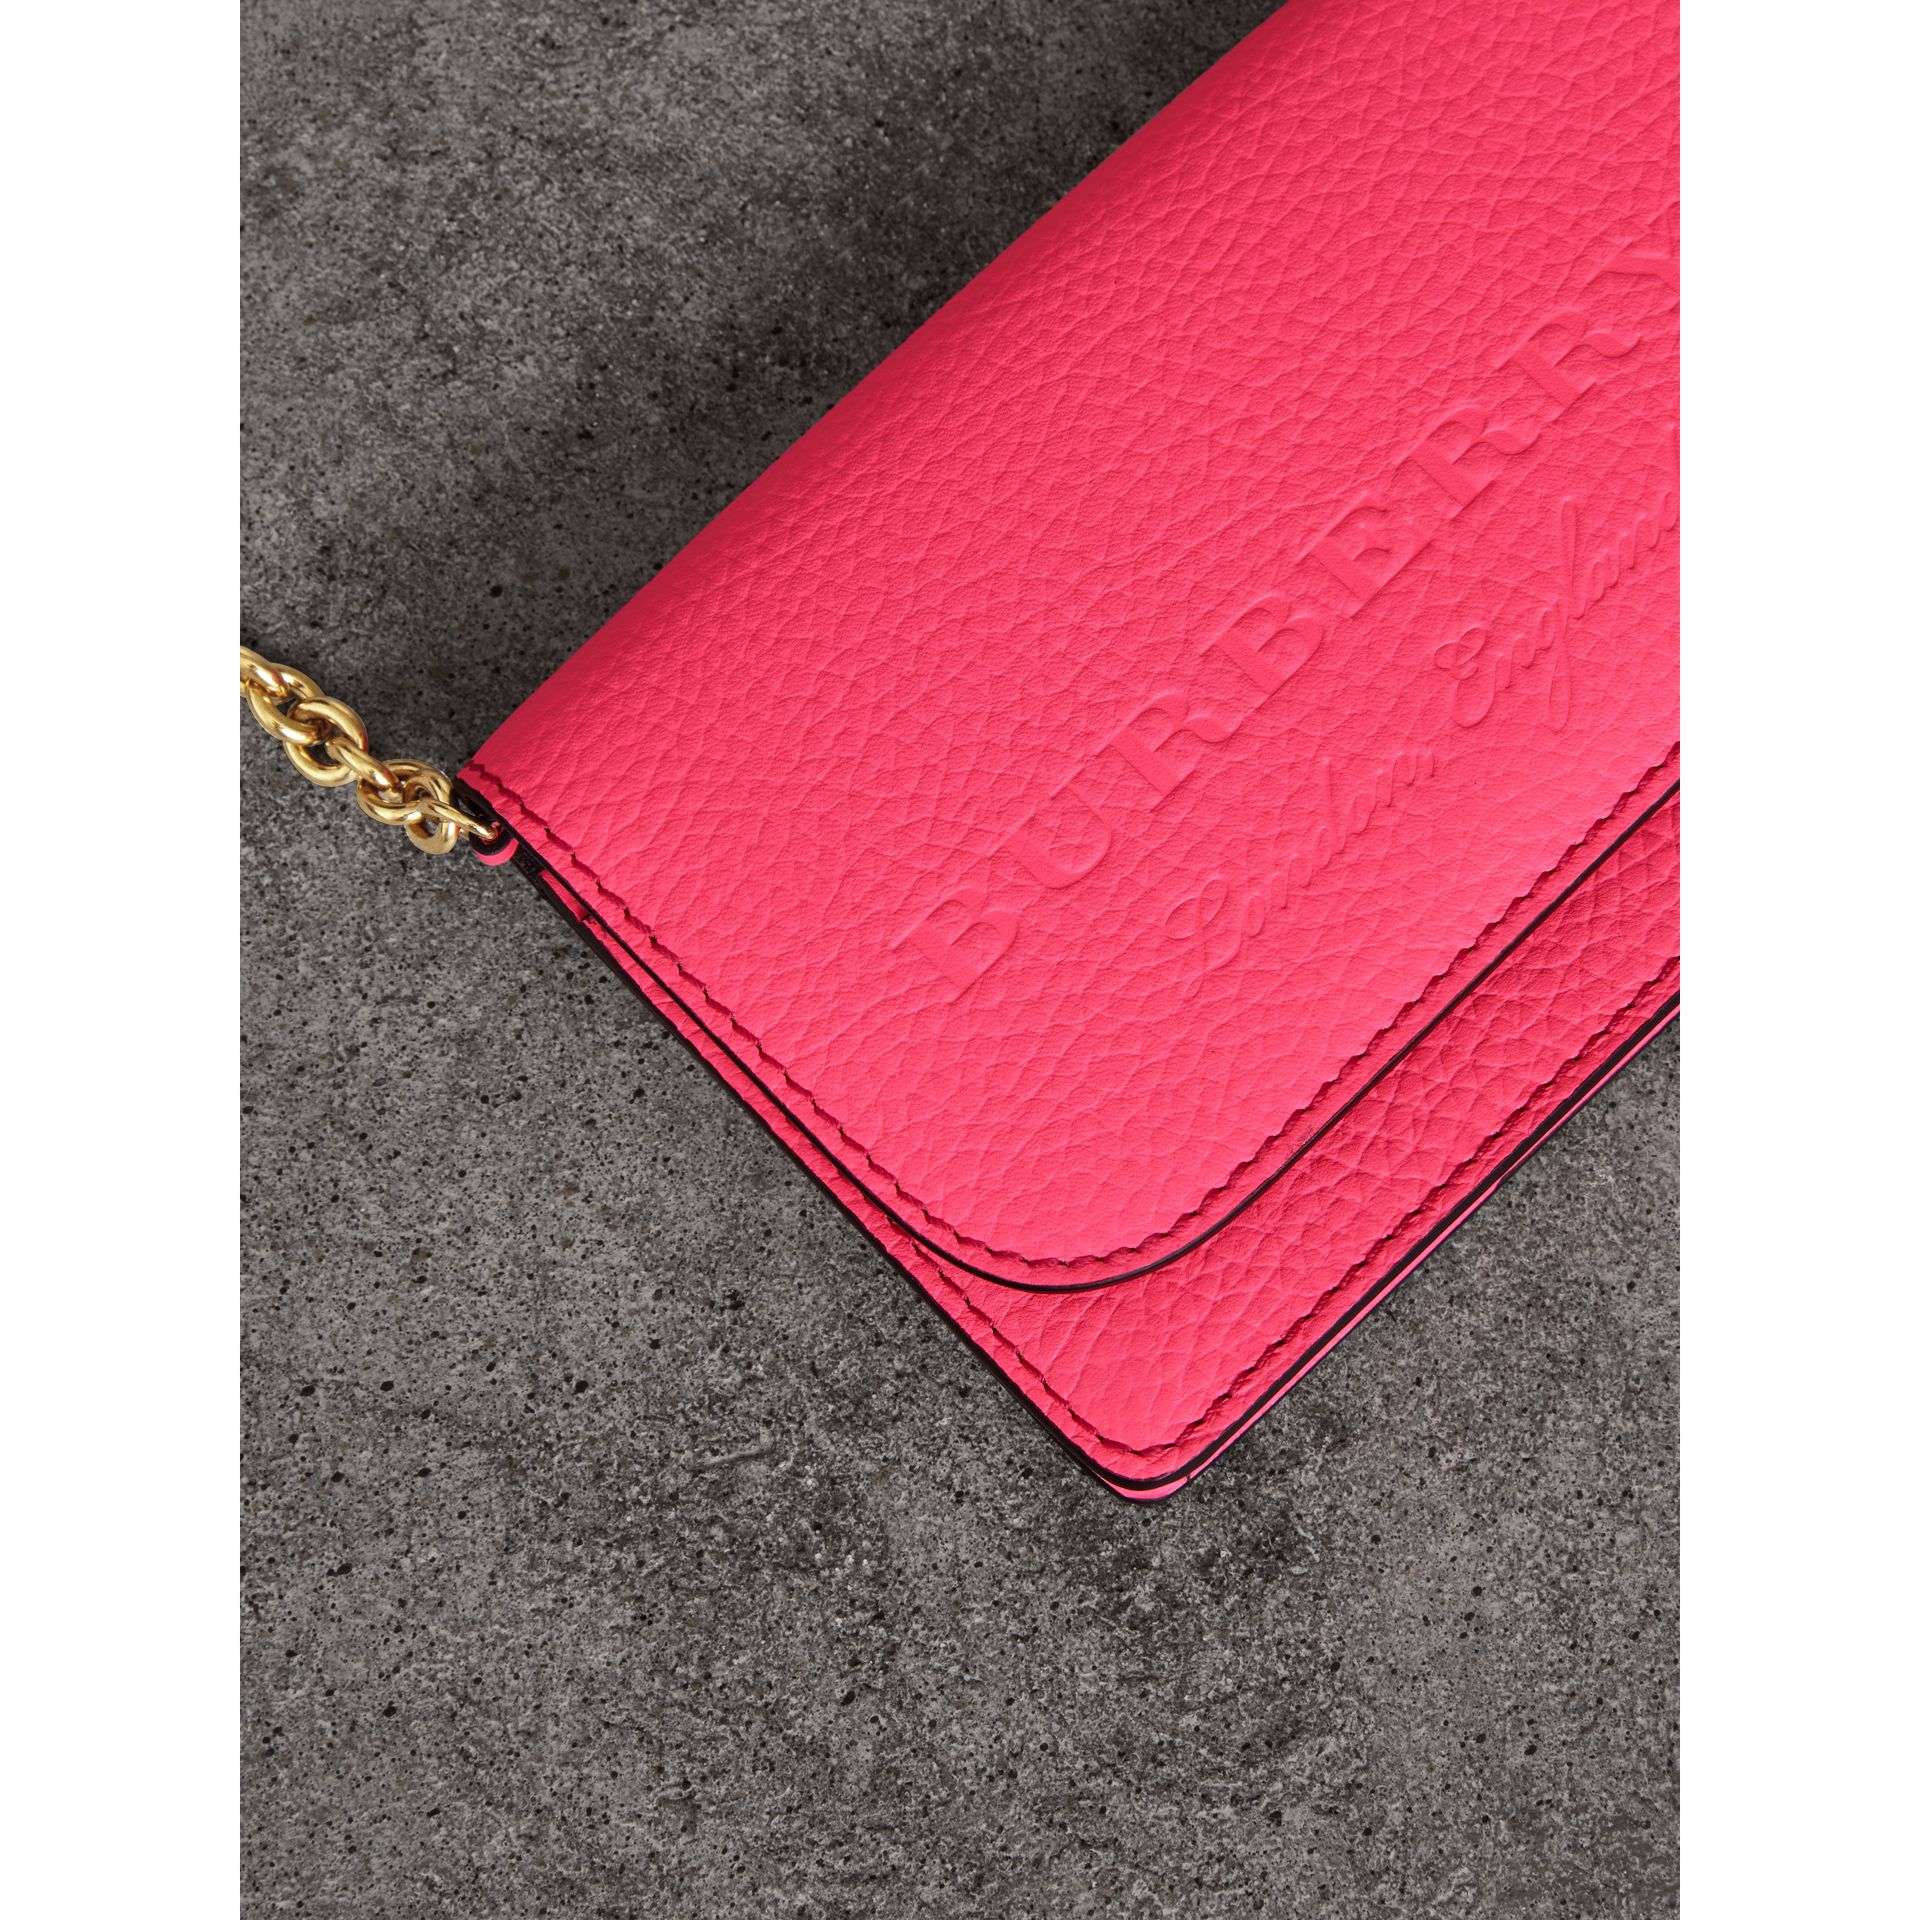 Embossed Leather Wallet with Detachable Strap in Bright Pink - Women | Burberry United Kingdom - gallery image 1